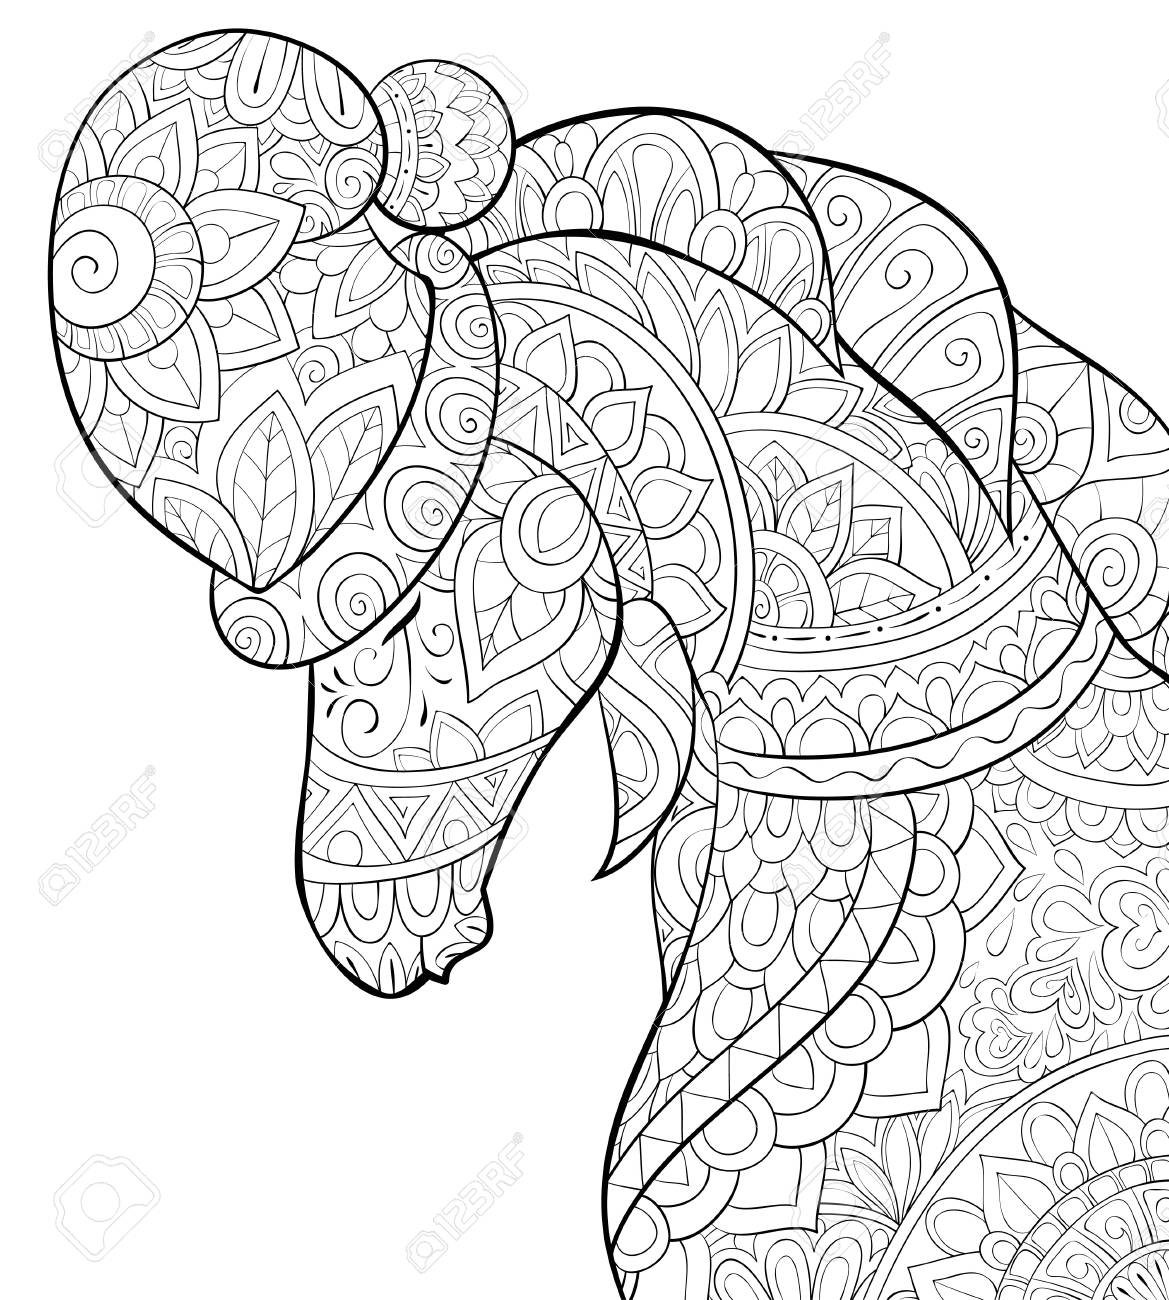 Christmas Horse Drawing.A Cute Horse Wearing A Christmas Cap With Ornaments Image For